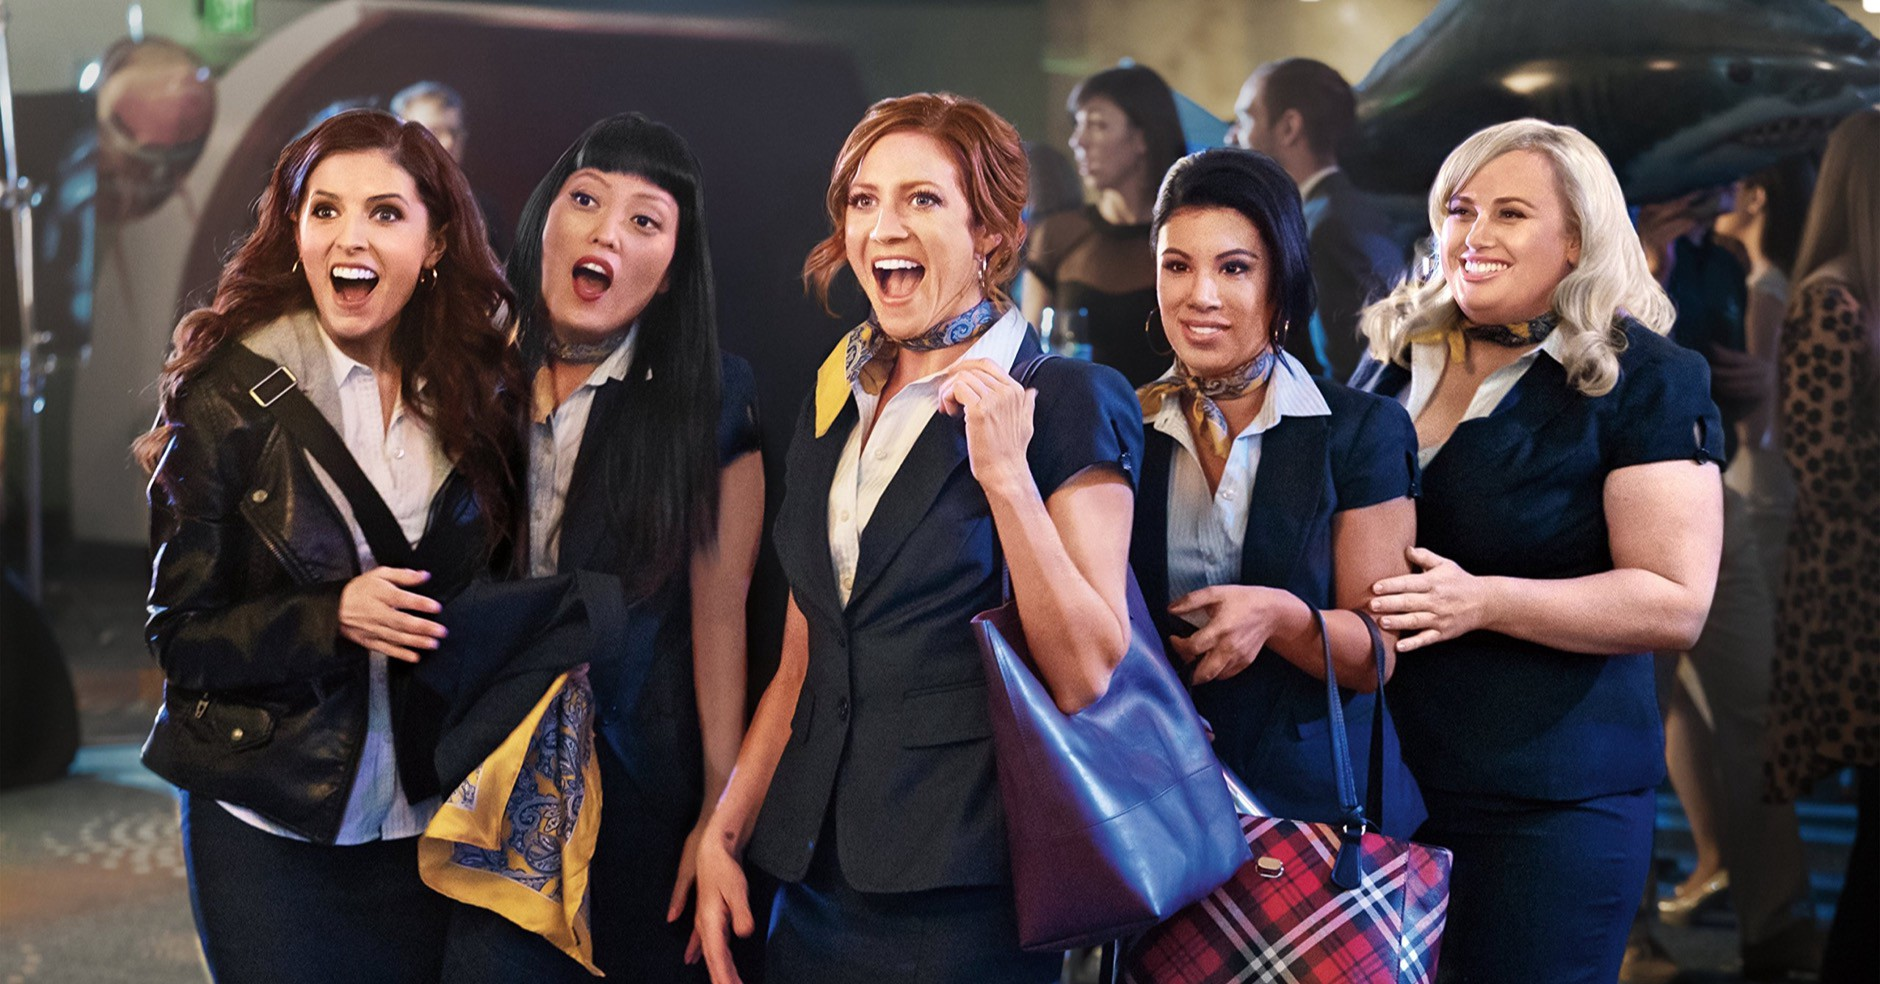 Review: Pitch Perfect 3 is the worst of the trilogy